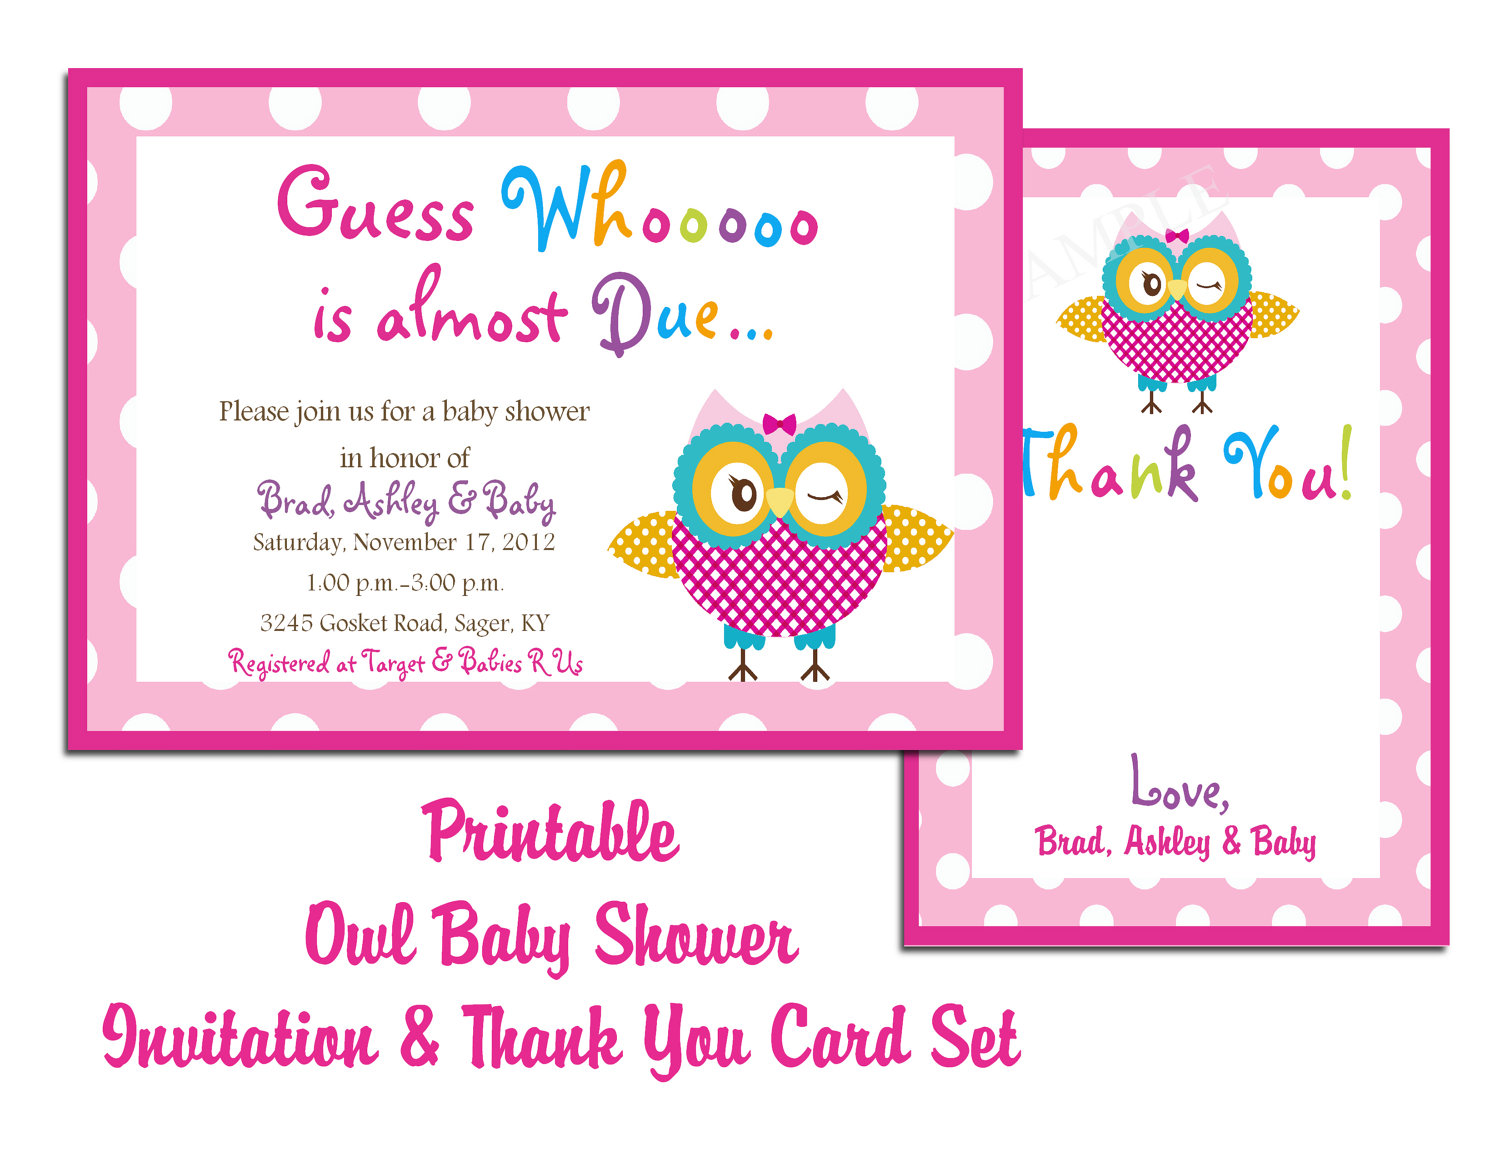 7 Images of Printable Baby Templates